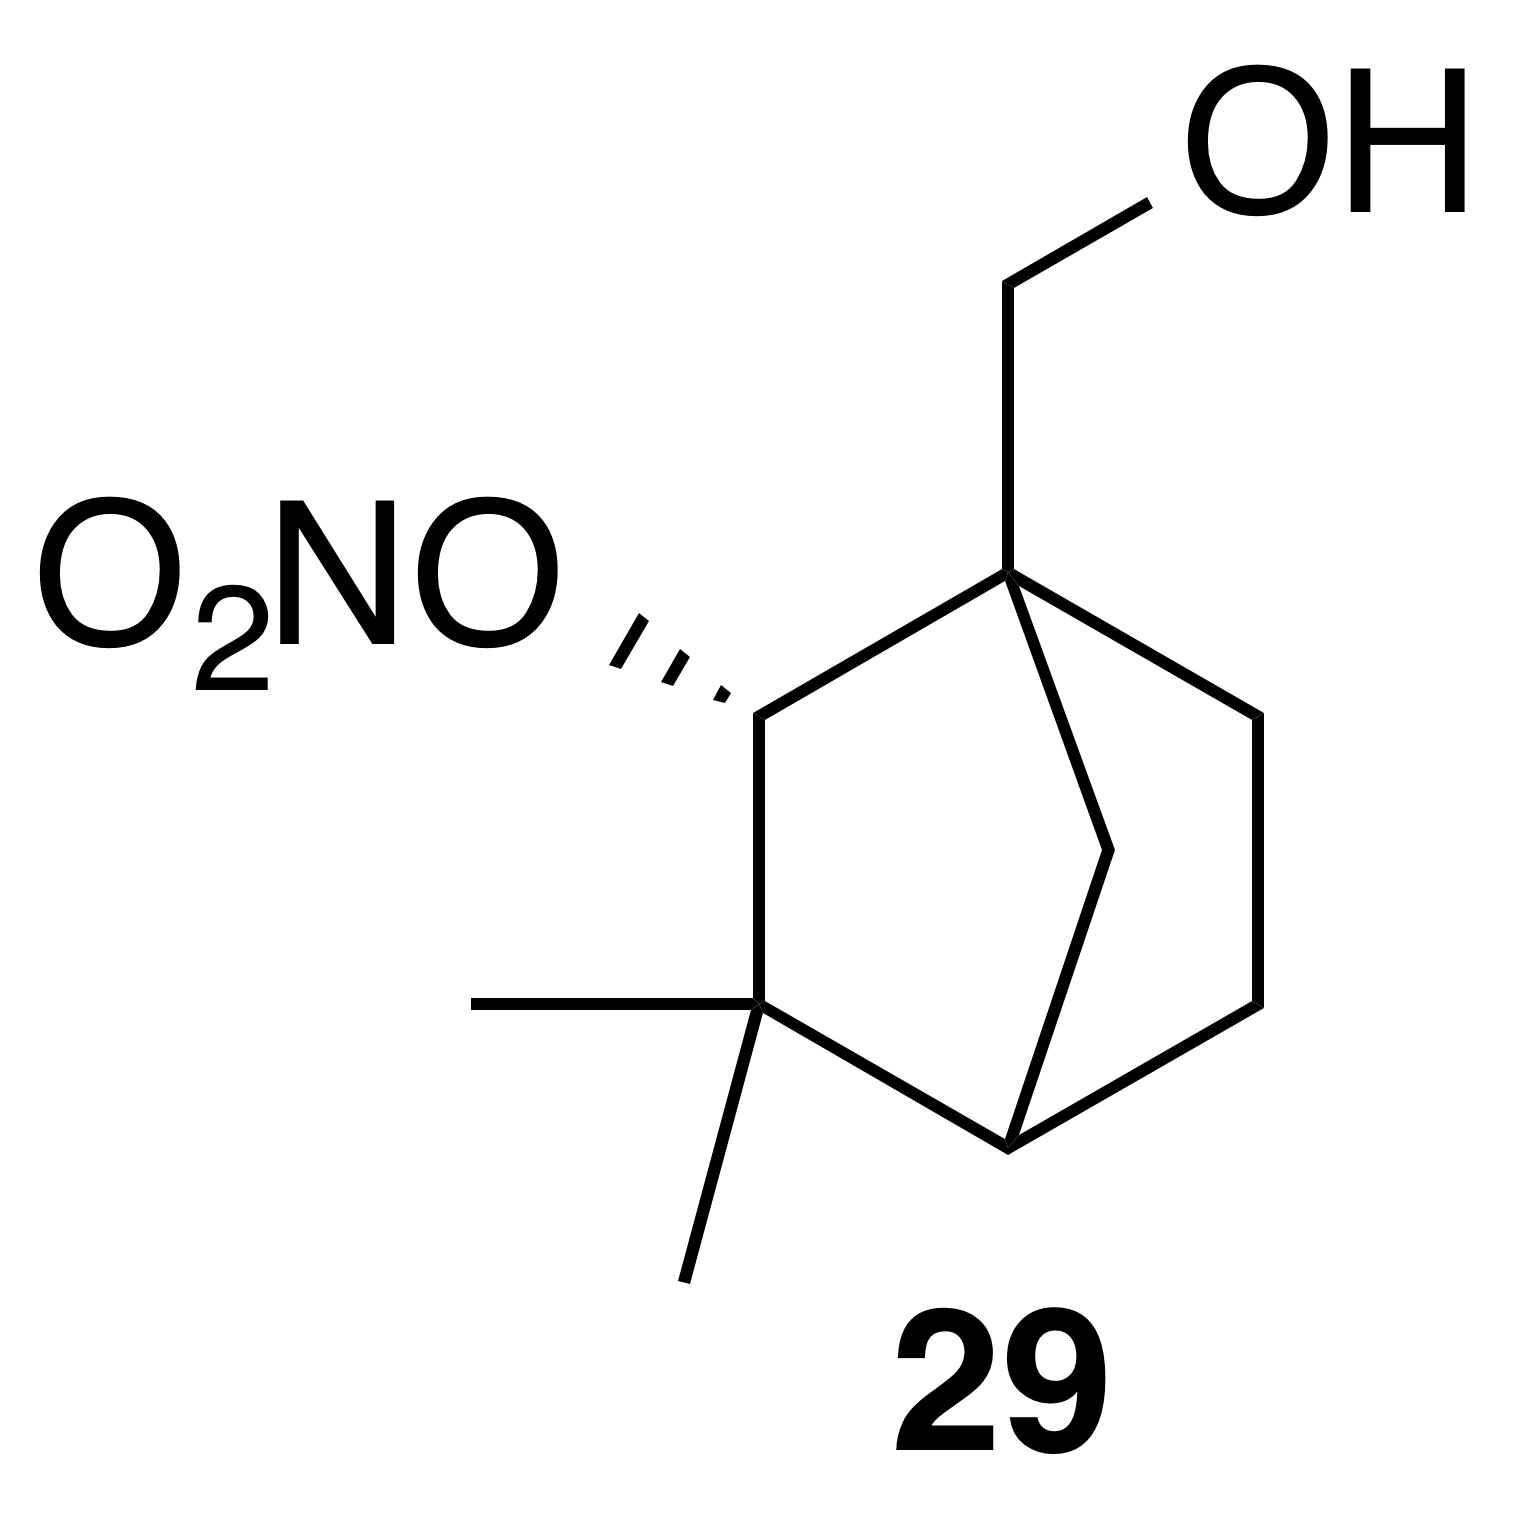 https://www.atmos-chem-phys.net/20/4241/2020/acp-20-4241-2020-g24